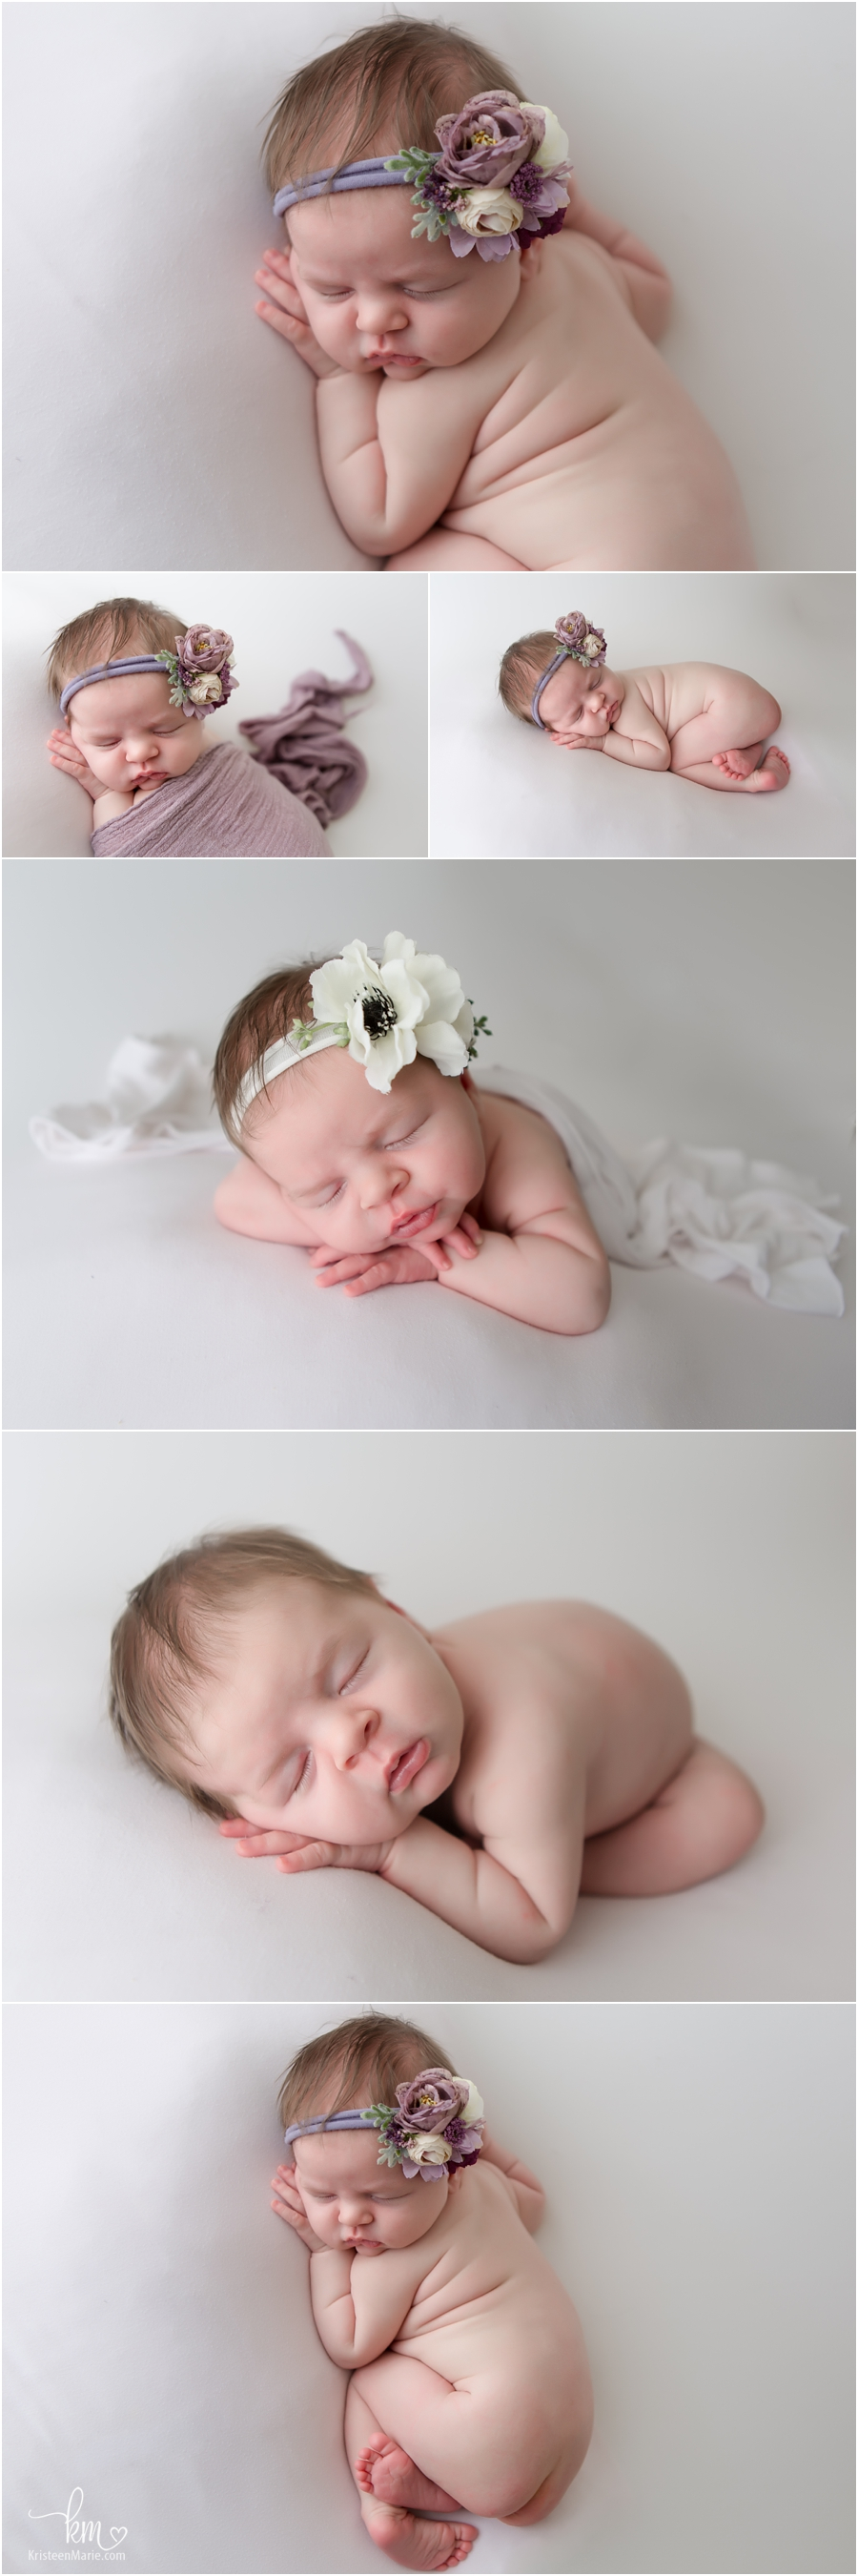 newborn baby girl pictures on whtie backdrop - Indianapolis newborn photography